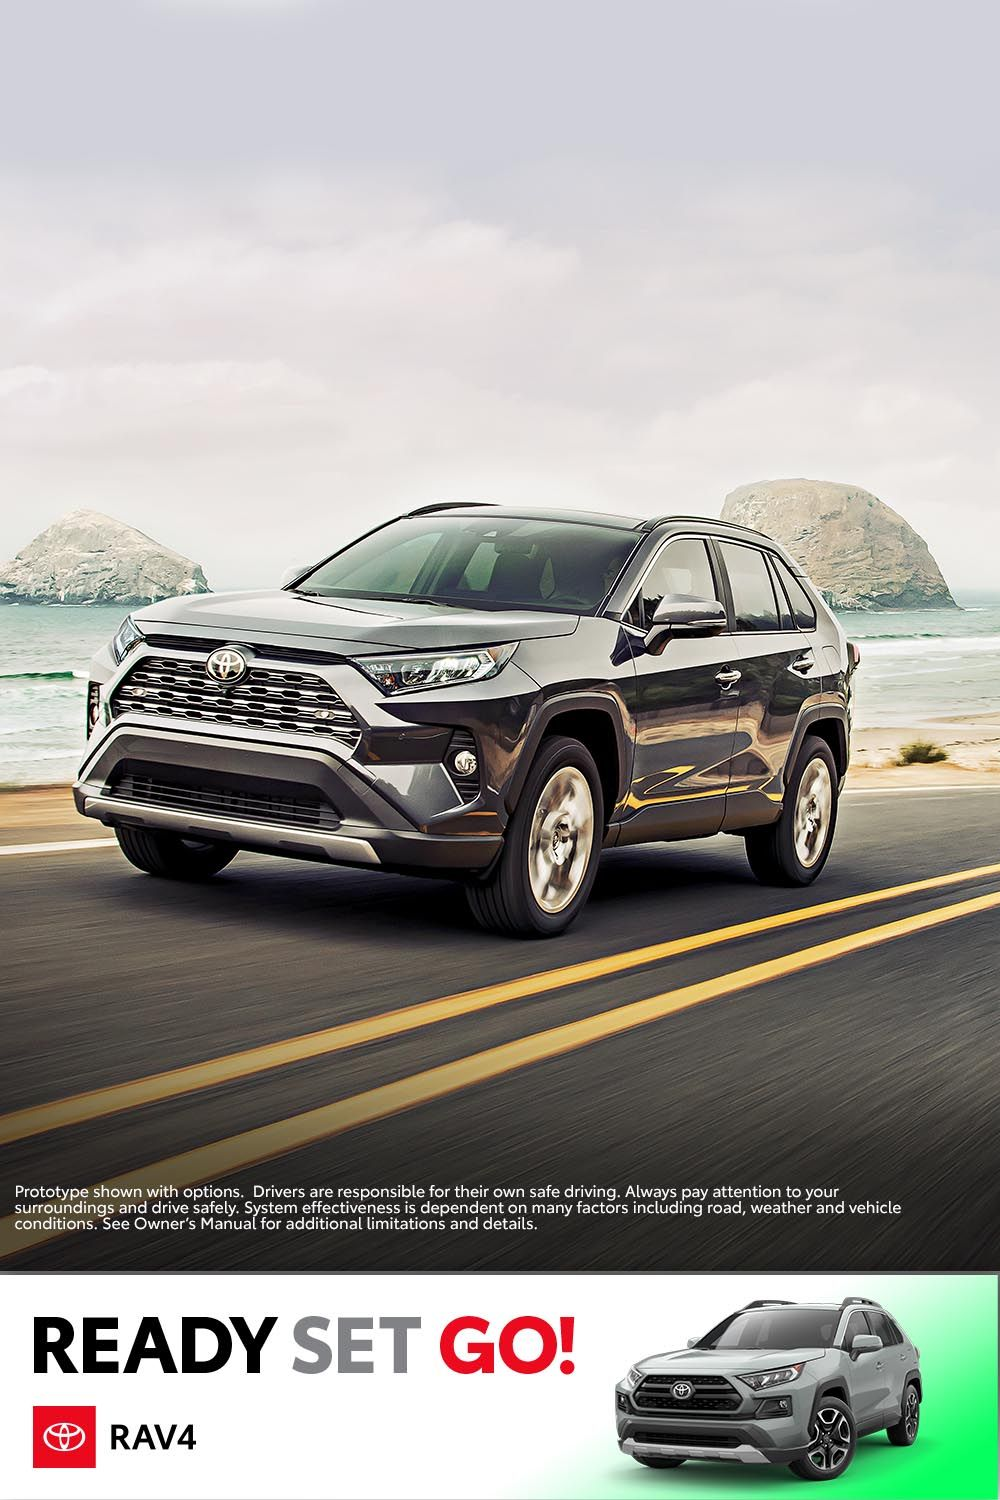 71d17df241 Get the verve to venture far and wide with the 2019 RAV4. This all ...